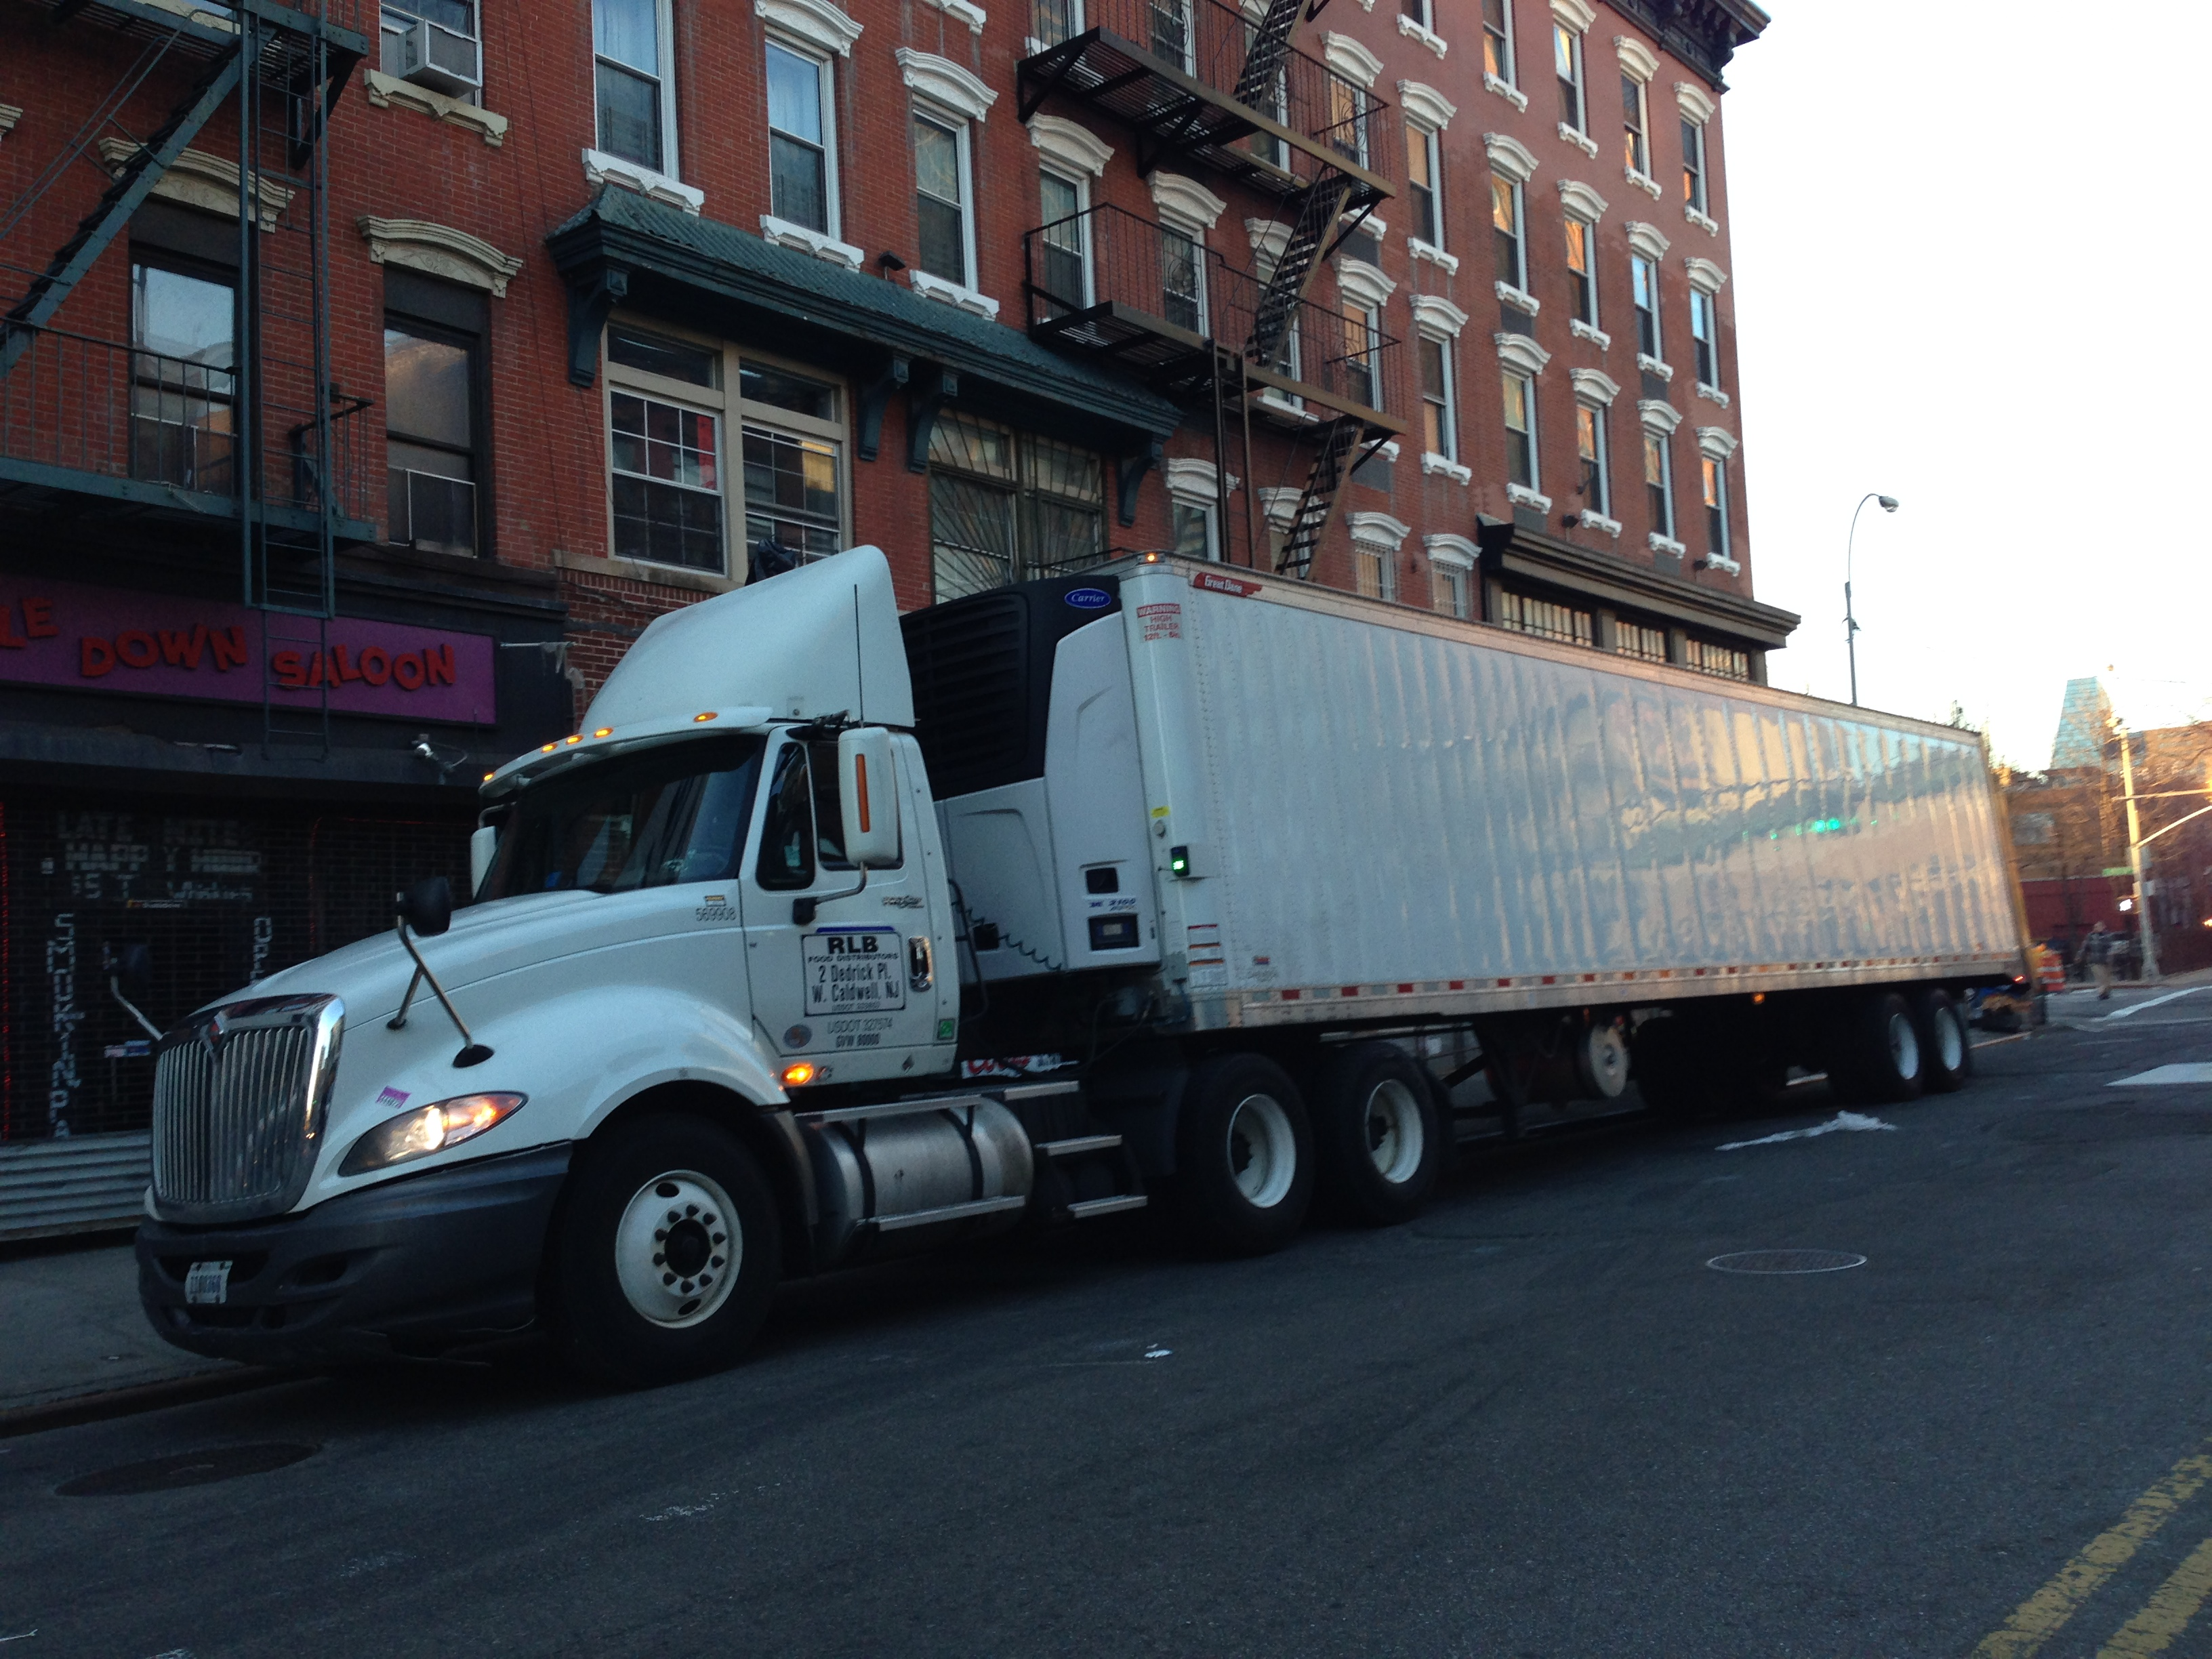 Size and Weight Restrictions for Trucks and Commercial vehicles in NYC